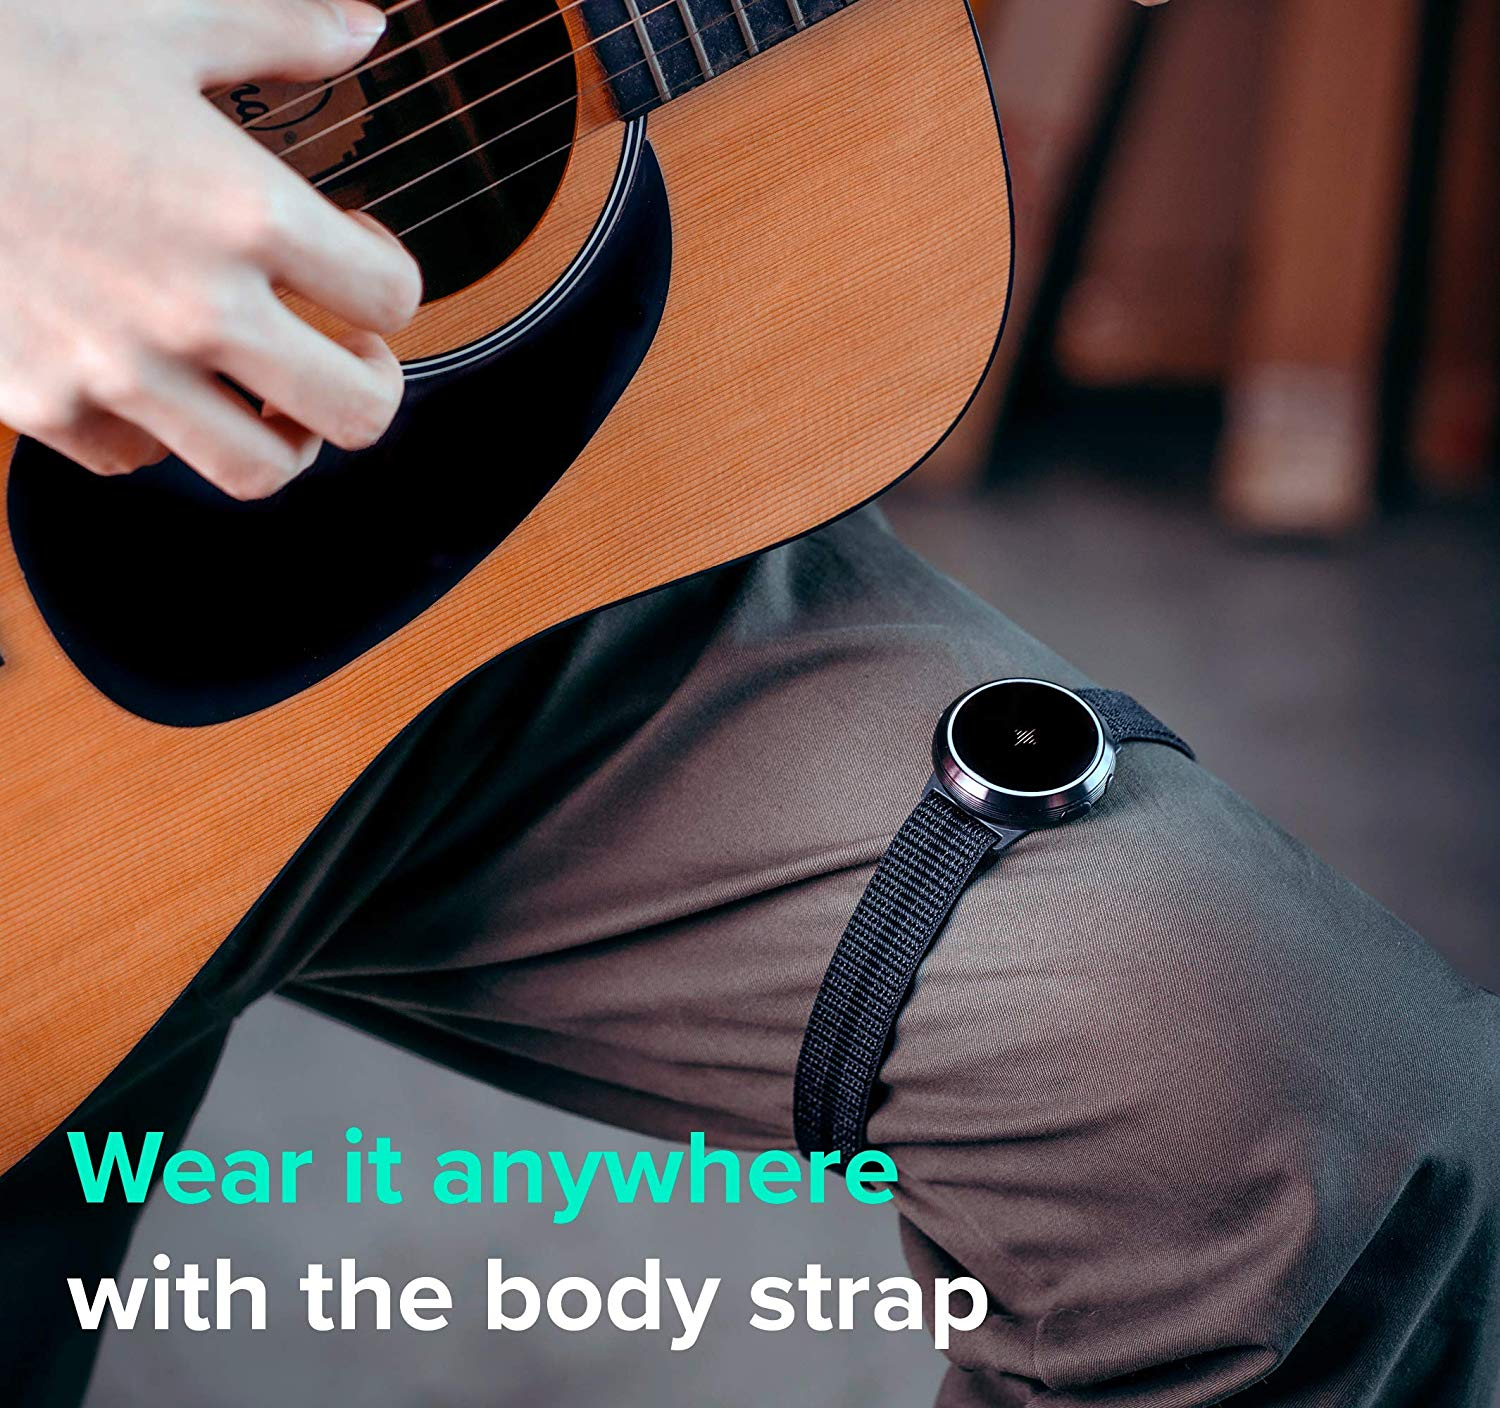 The Soundbrenner Core 4-in-1 Wearable Music Tool being worn on a Musician's Thigh